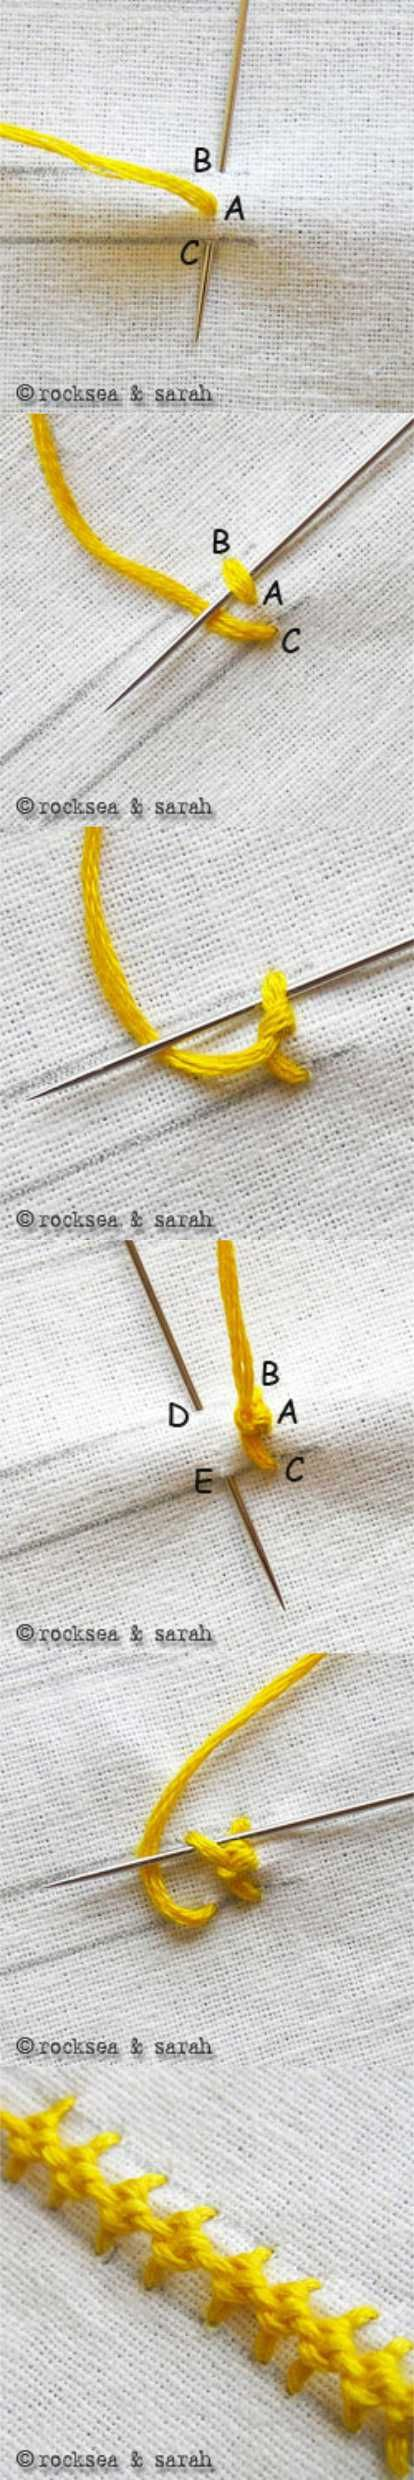 http://www.embroidery.rocksea.org/stitch/palestrina/basque-knot/